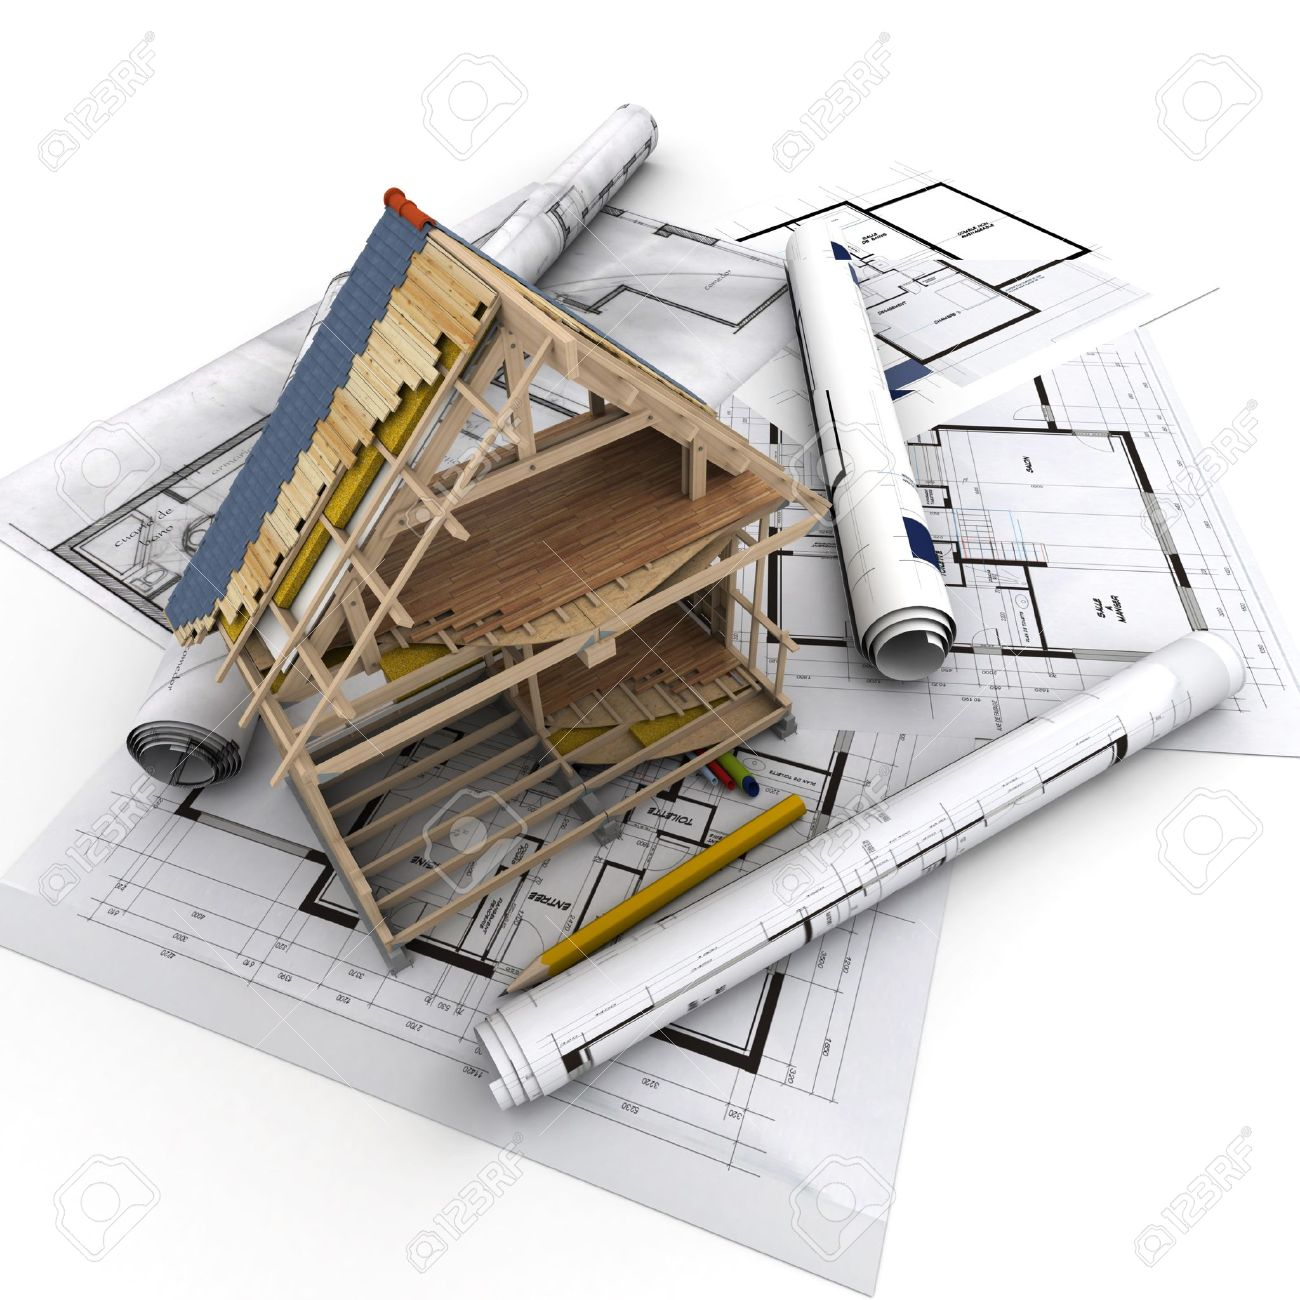 Technical Details Of Home Construction Stock Photo, Picture And ...